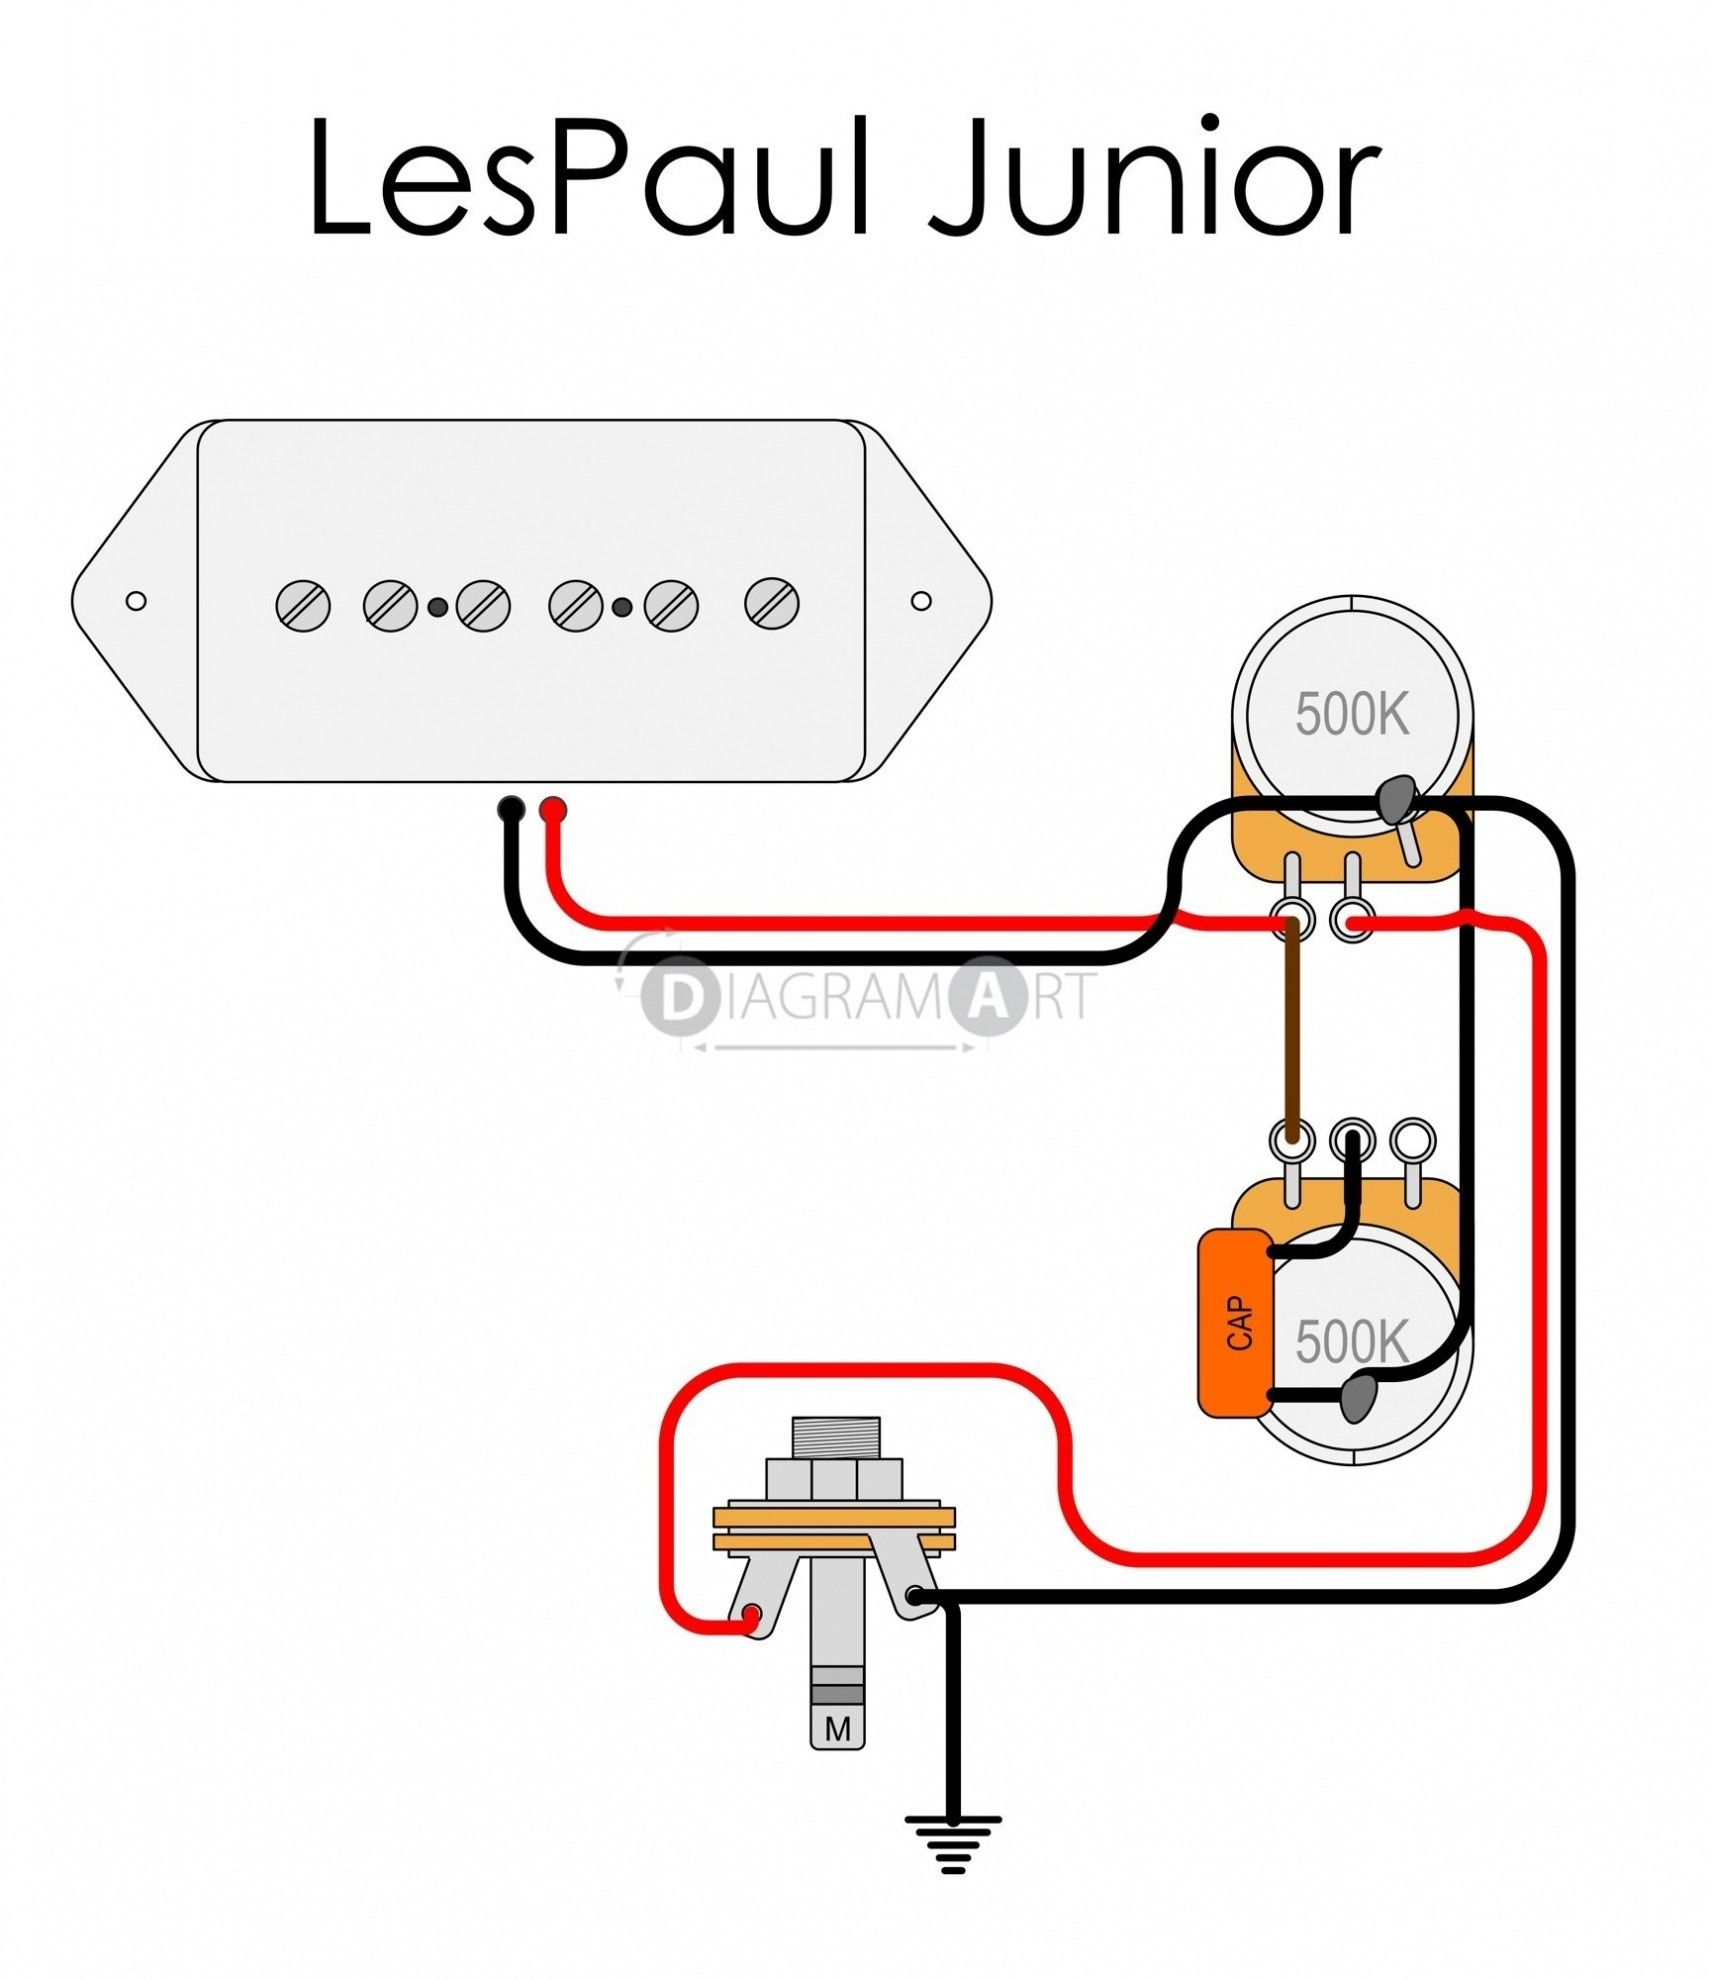 unique wiring diagram for one pickup guitar #diagram #diagramsample  #diagramtemplate #wiringdiagram #diagramchart #workshee… | epiphone les paul,  les paul, epiphone  pinterest